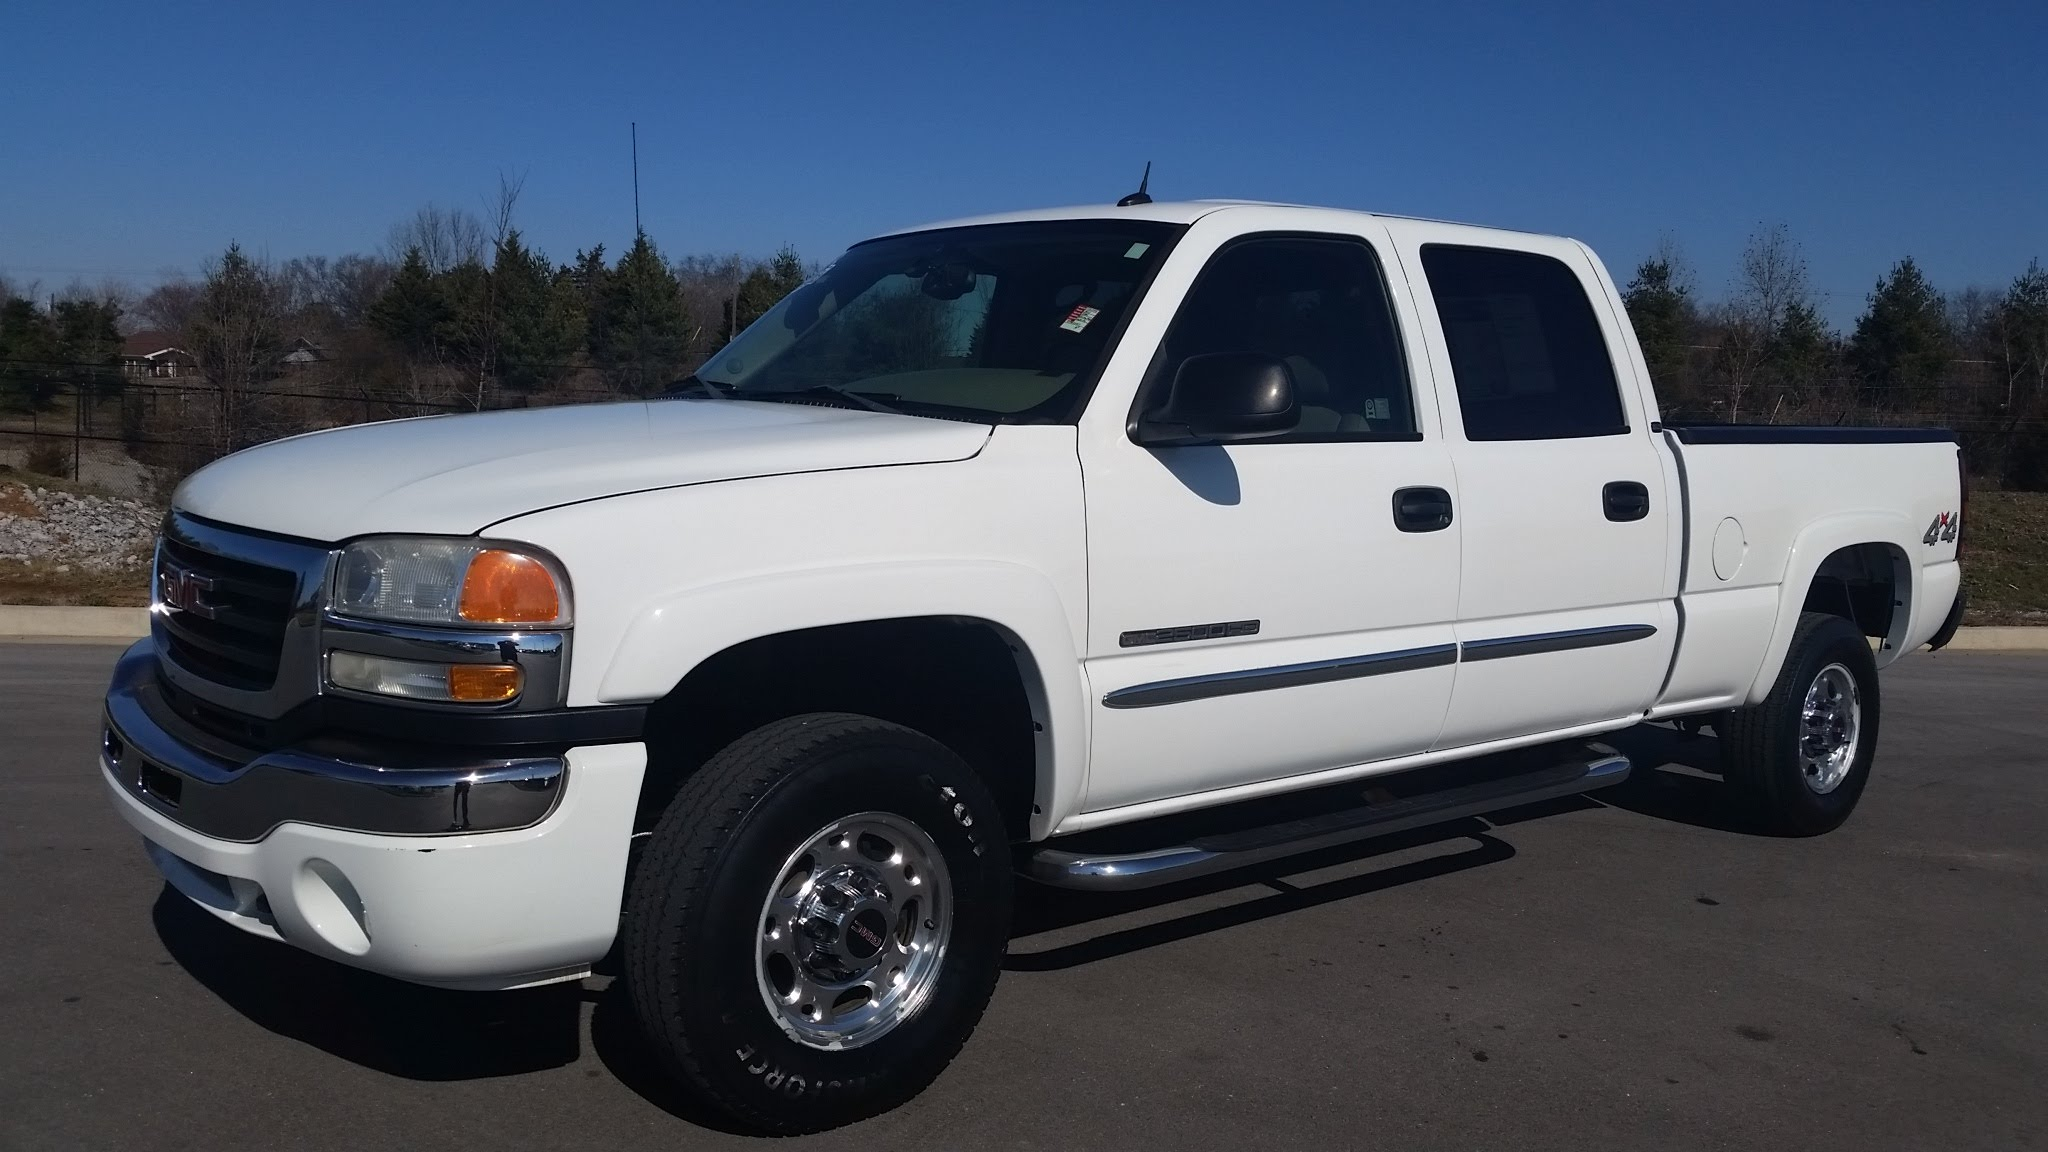 2005 GMC Sierra 2500hd #20